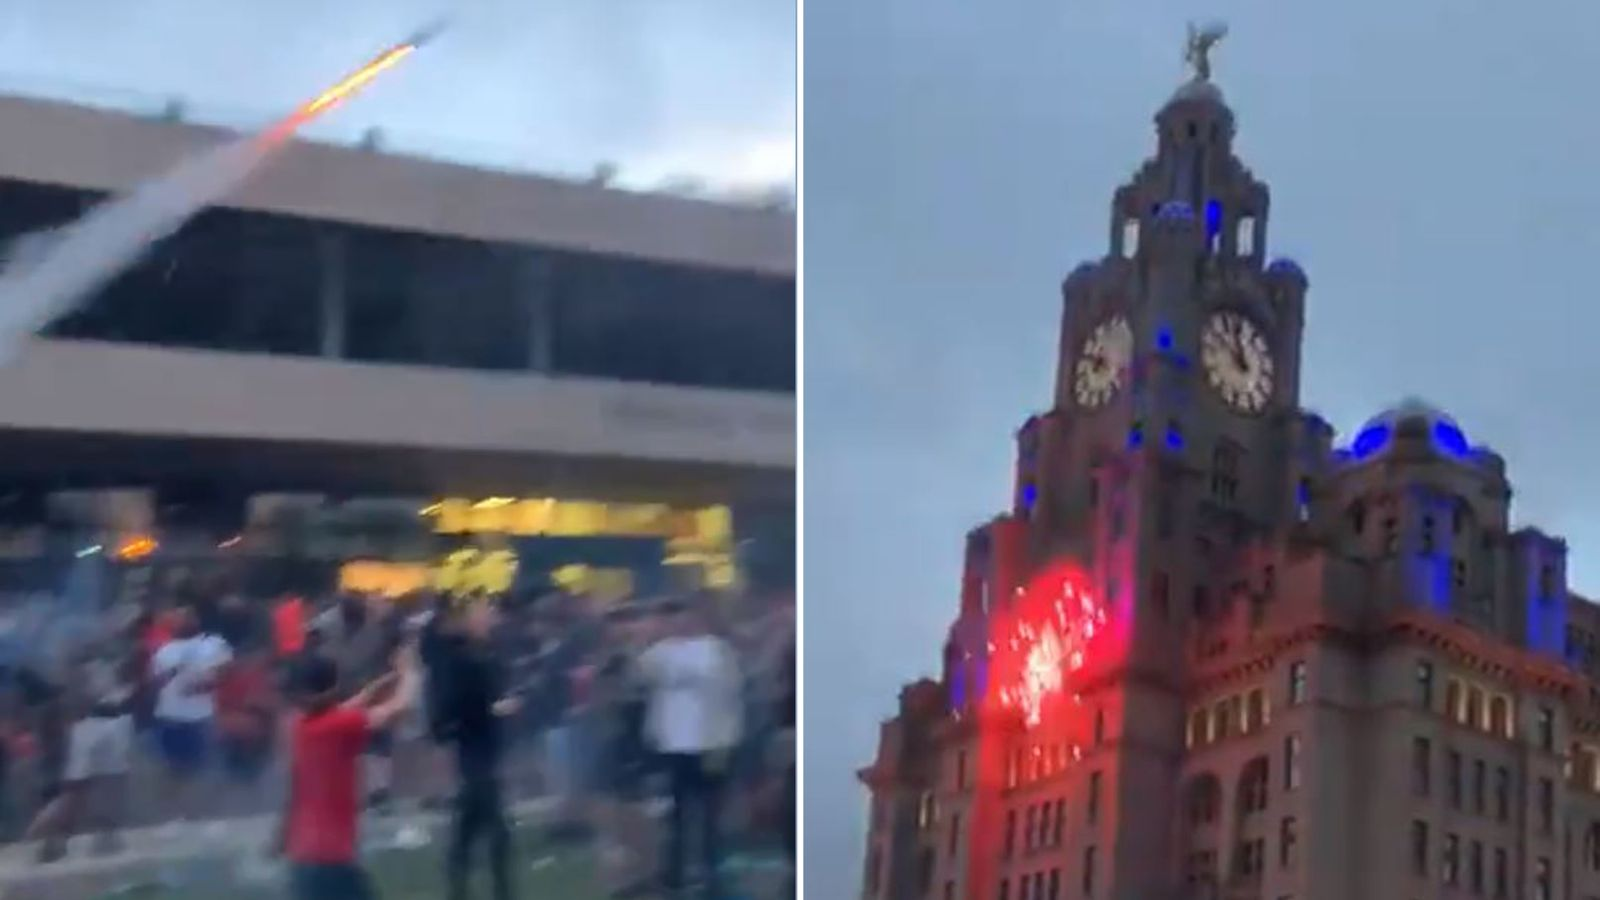 Liverpool: Firework launched into Liver Building as thousands celebrate in city for second night thumbnail